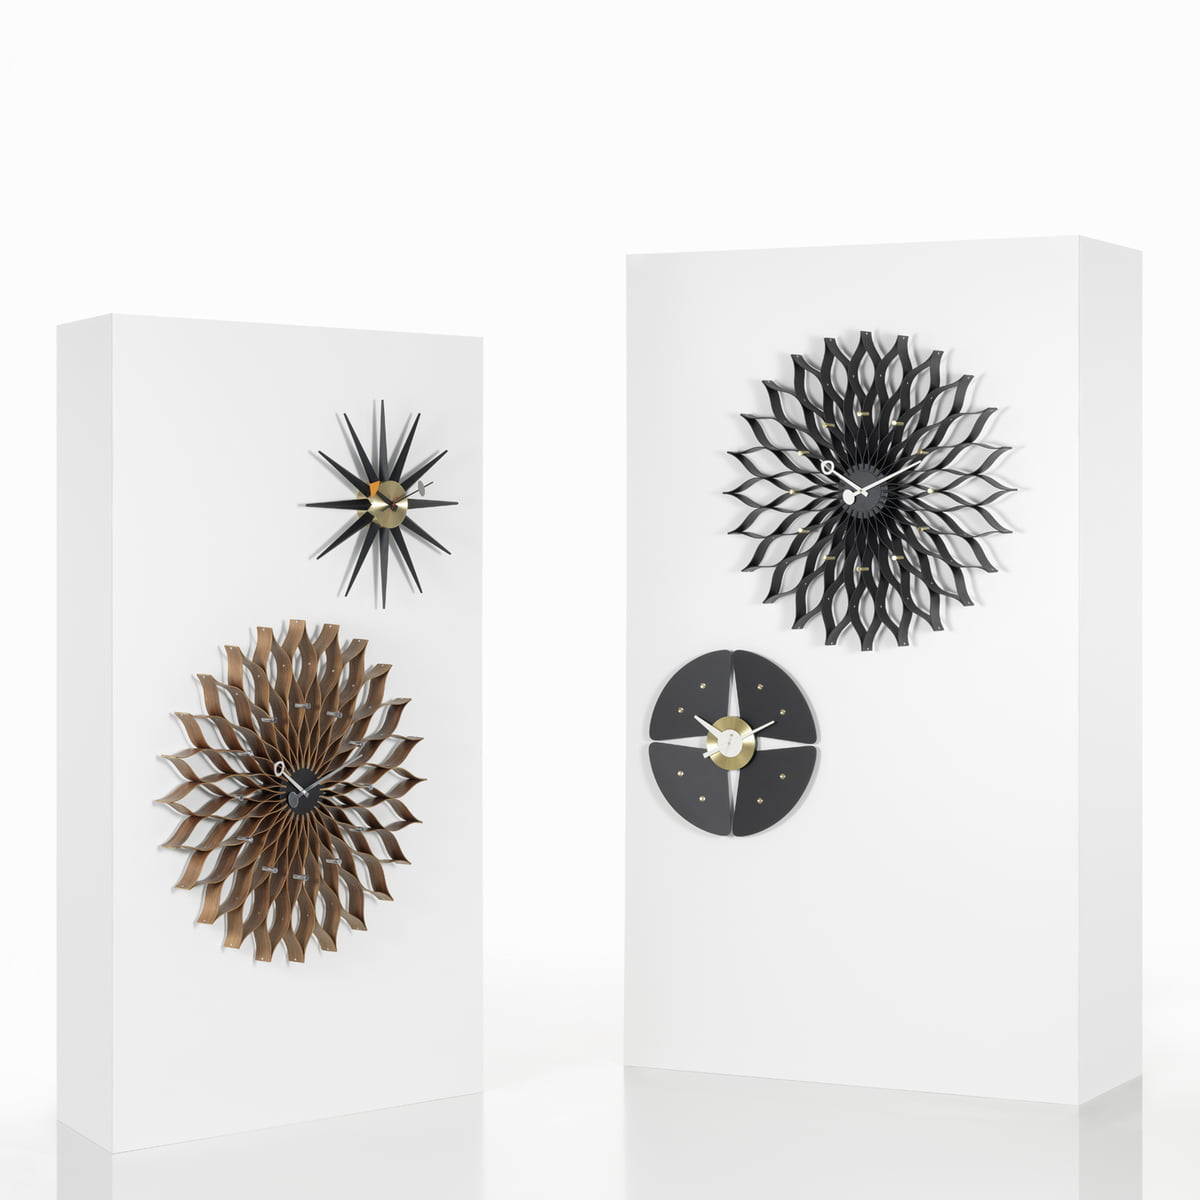 sunburst clock de vitra connox. Black Bedroom Furniture Sets. Home Design Ideas